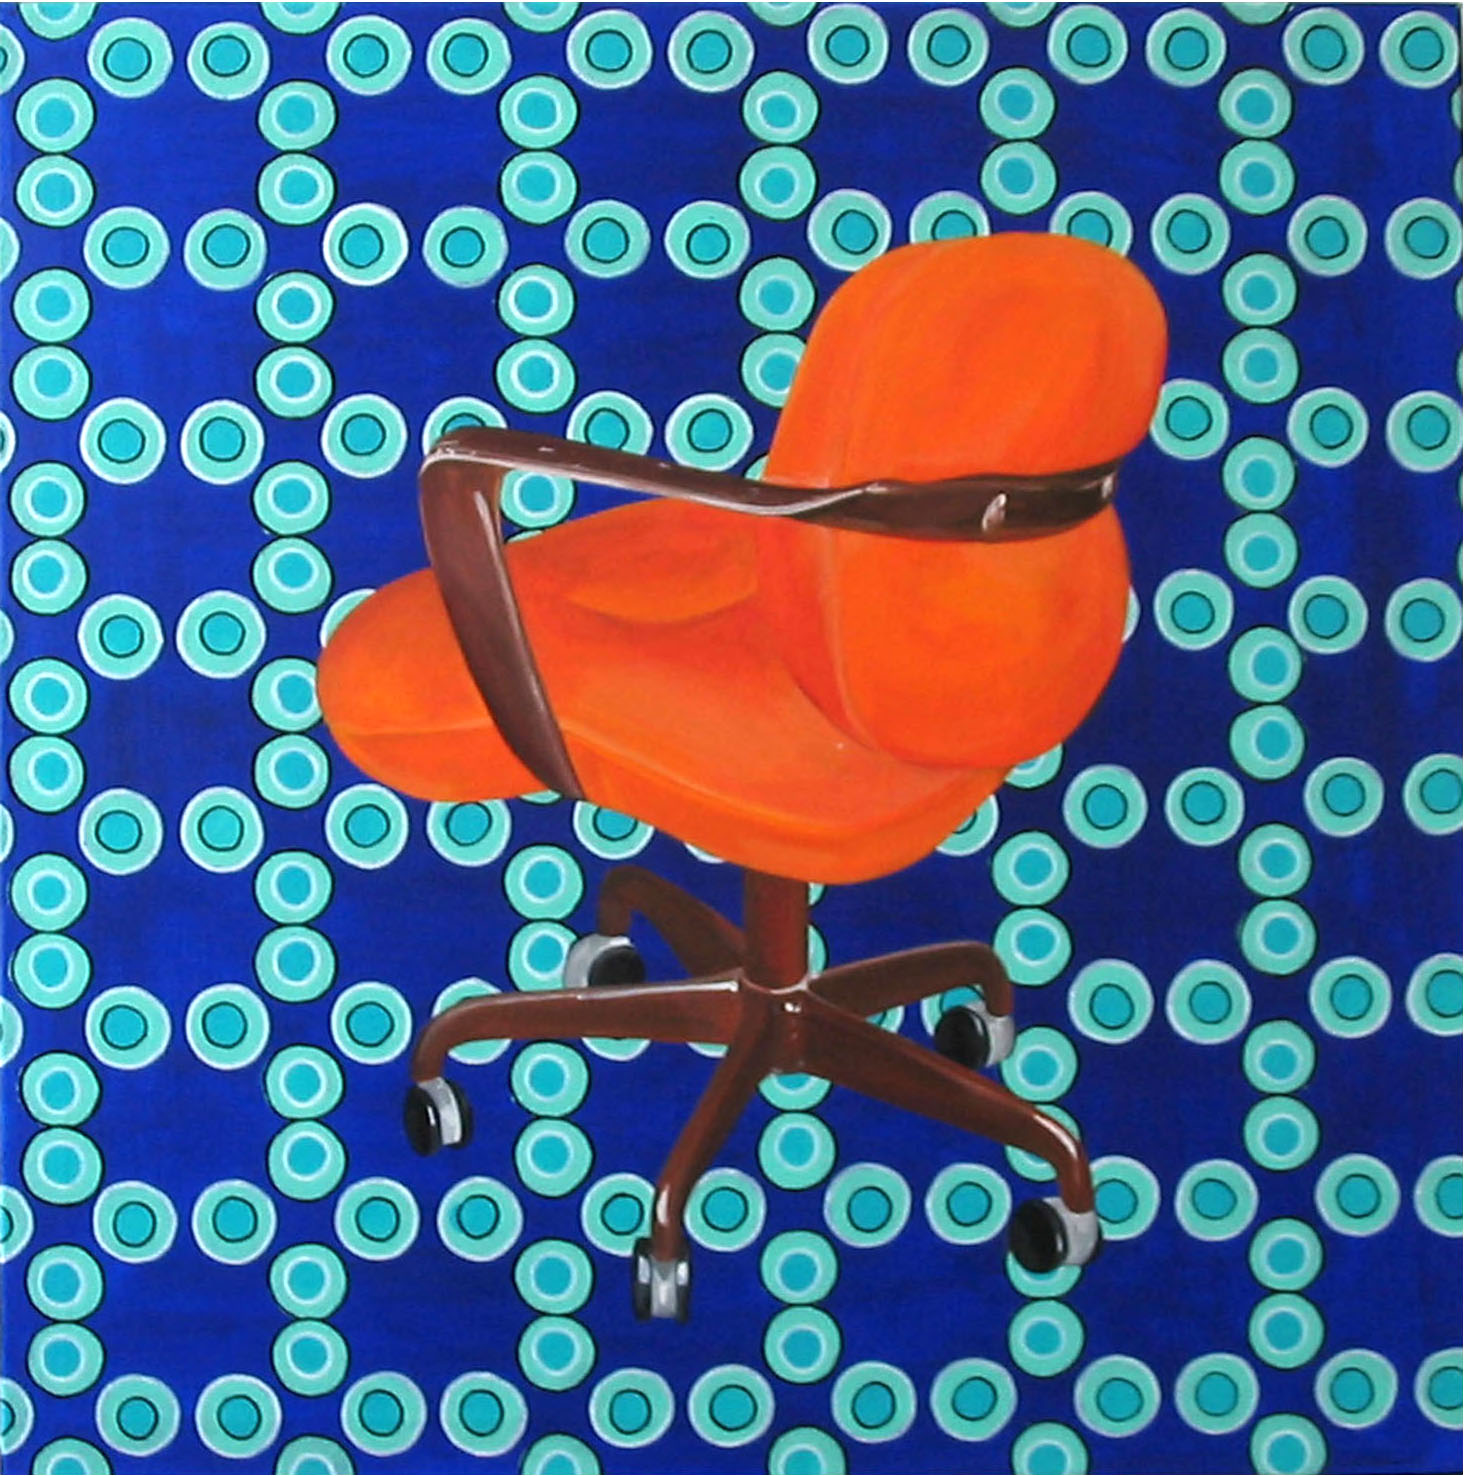 Orange on Blue, Acrylic on Canvas, 76cm x 76cm by Robin Clare